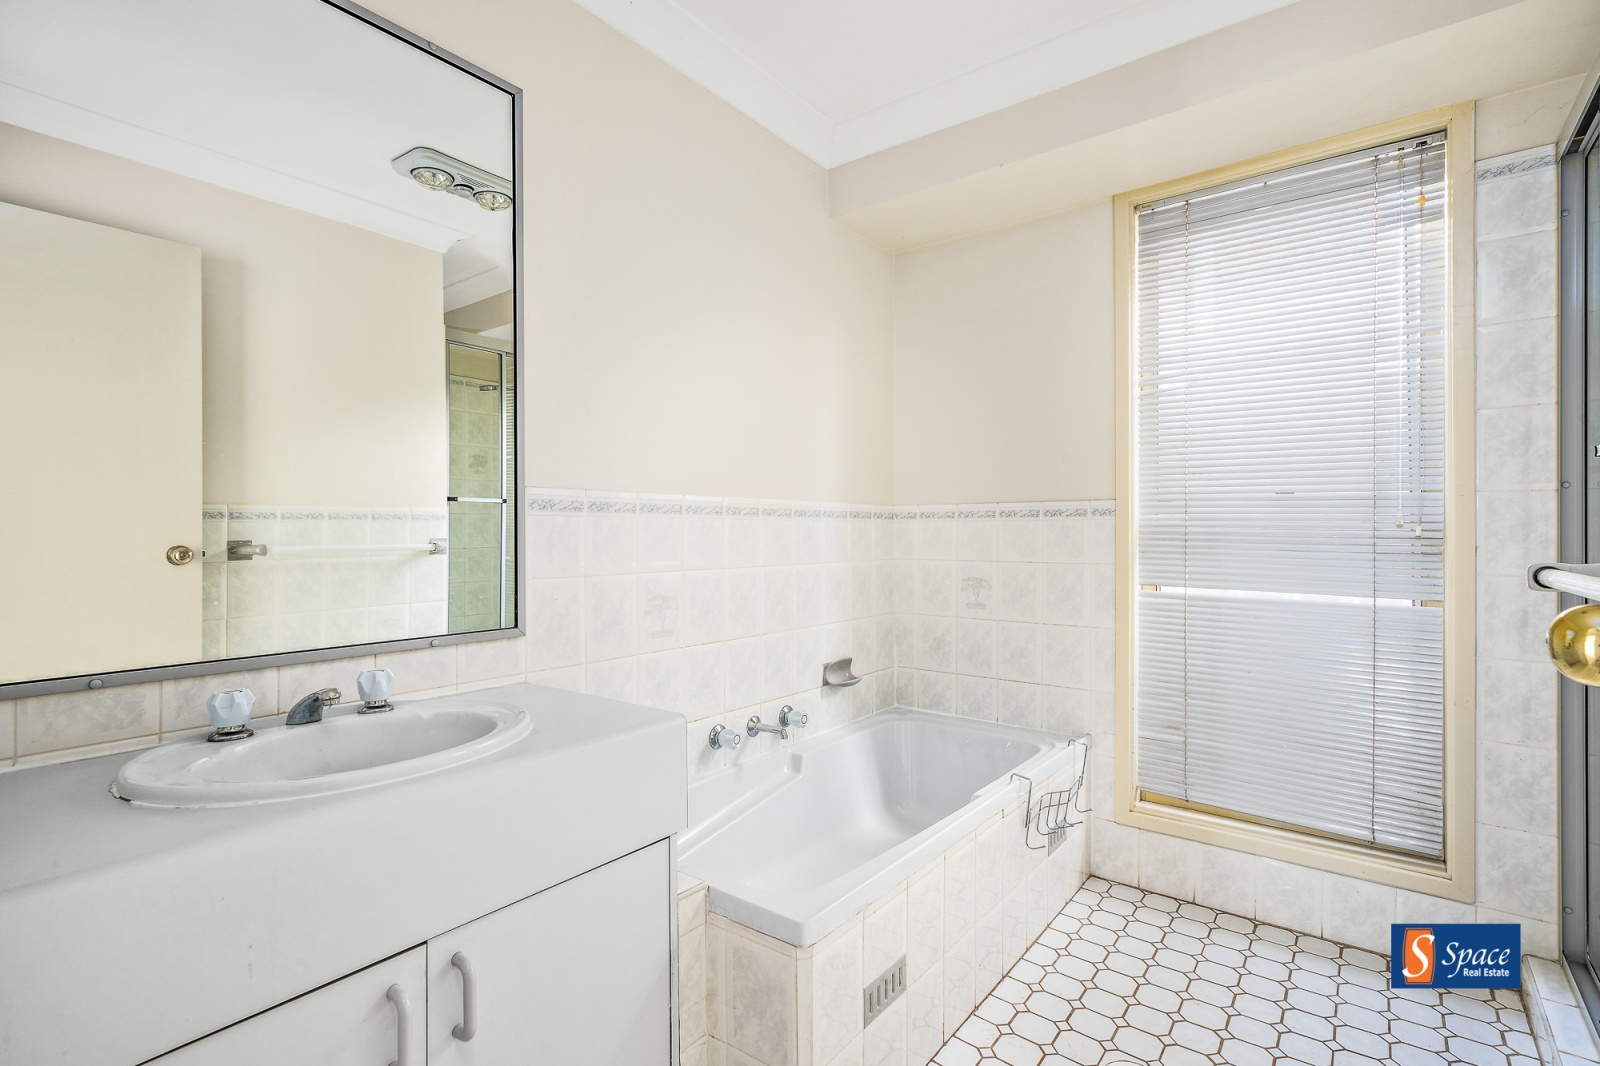 36 Throsby Drive,Narellan Vale,NSW,3 Bedrooms Bedrooms,1 BathroomBathrooms,House,Throsby Drive,1106